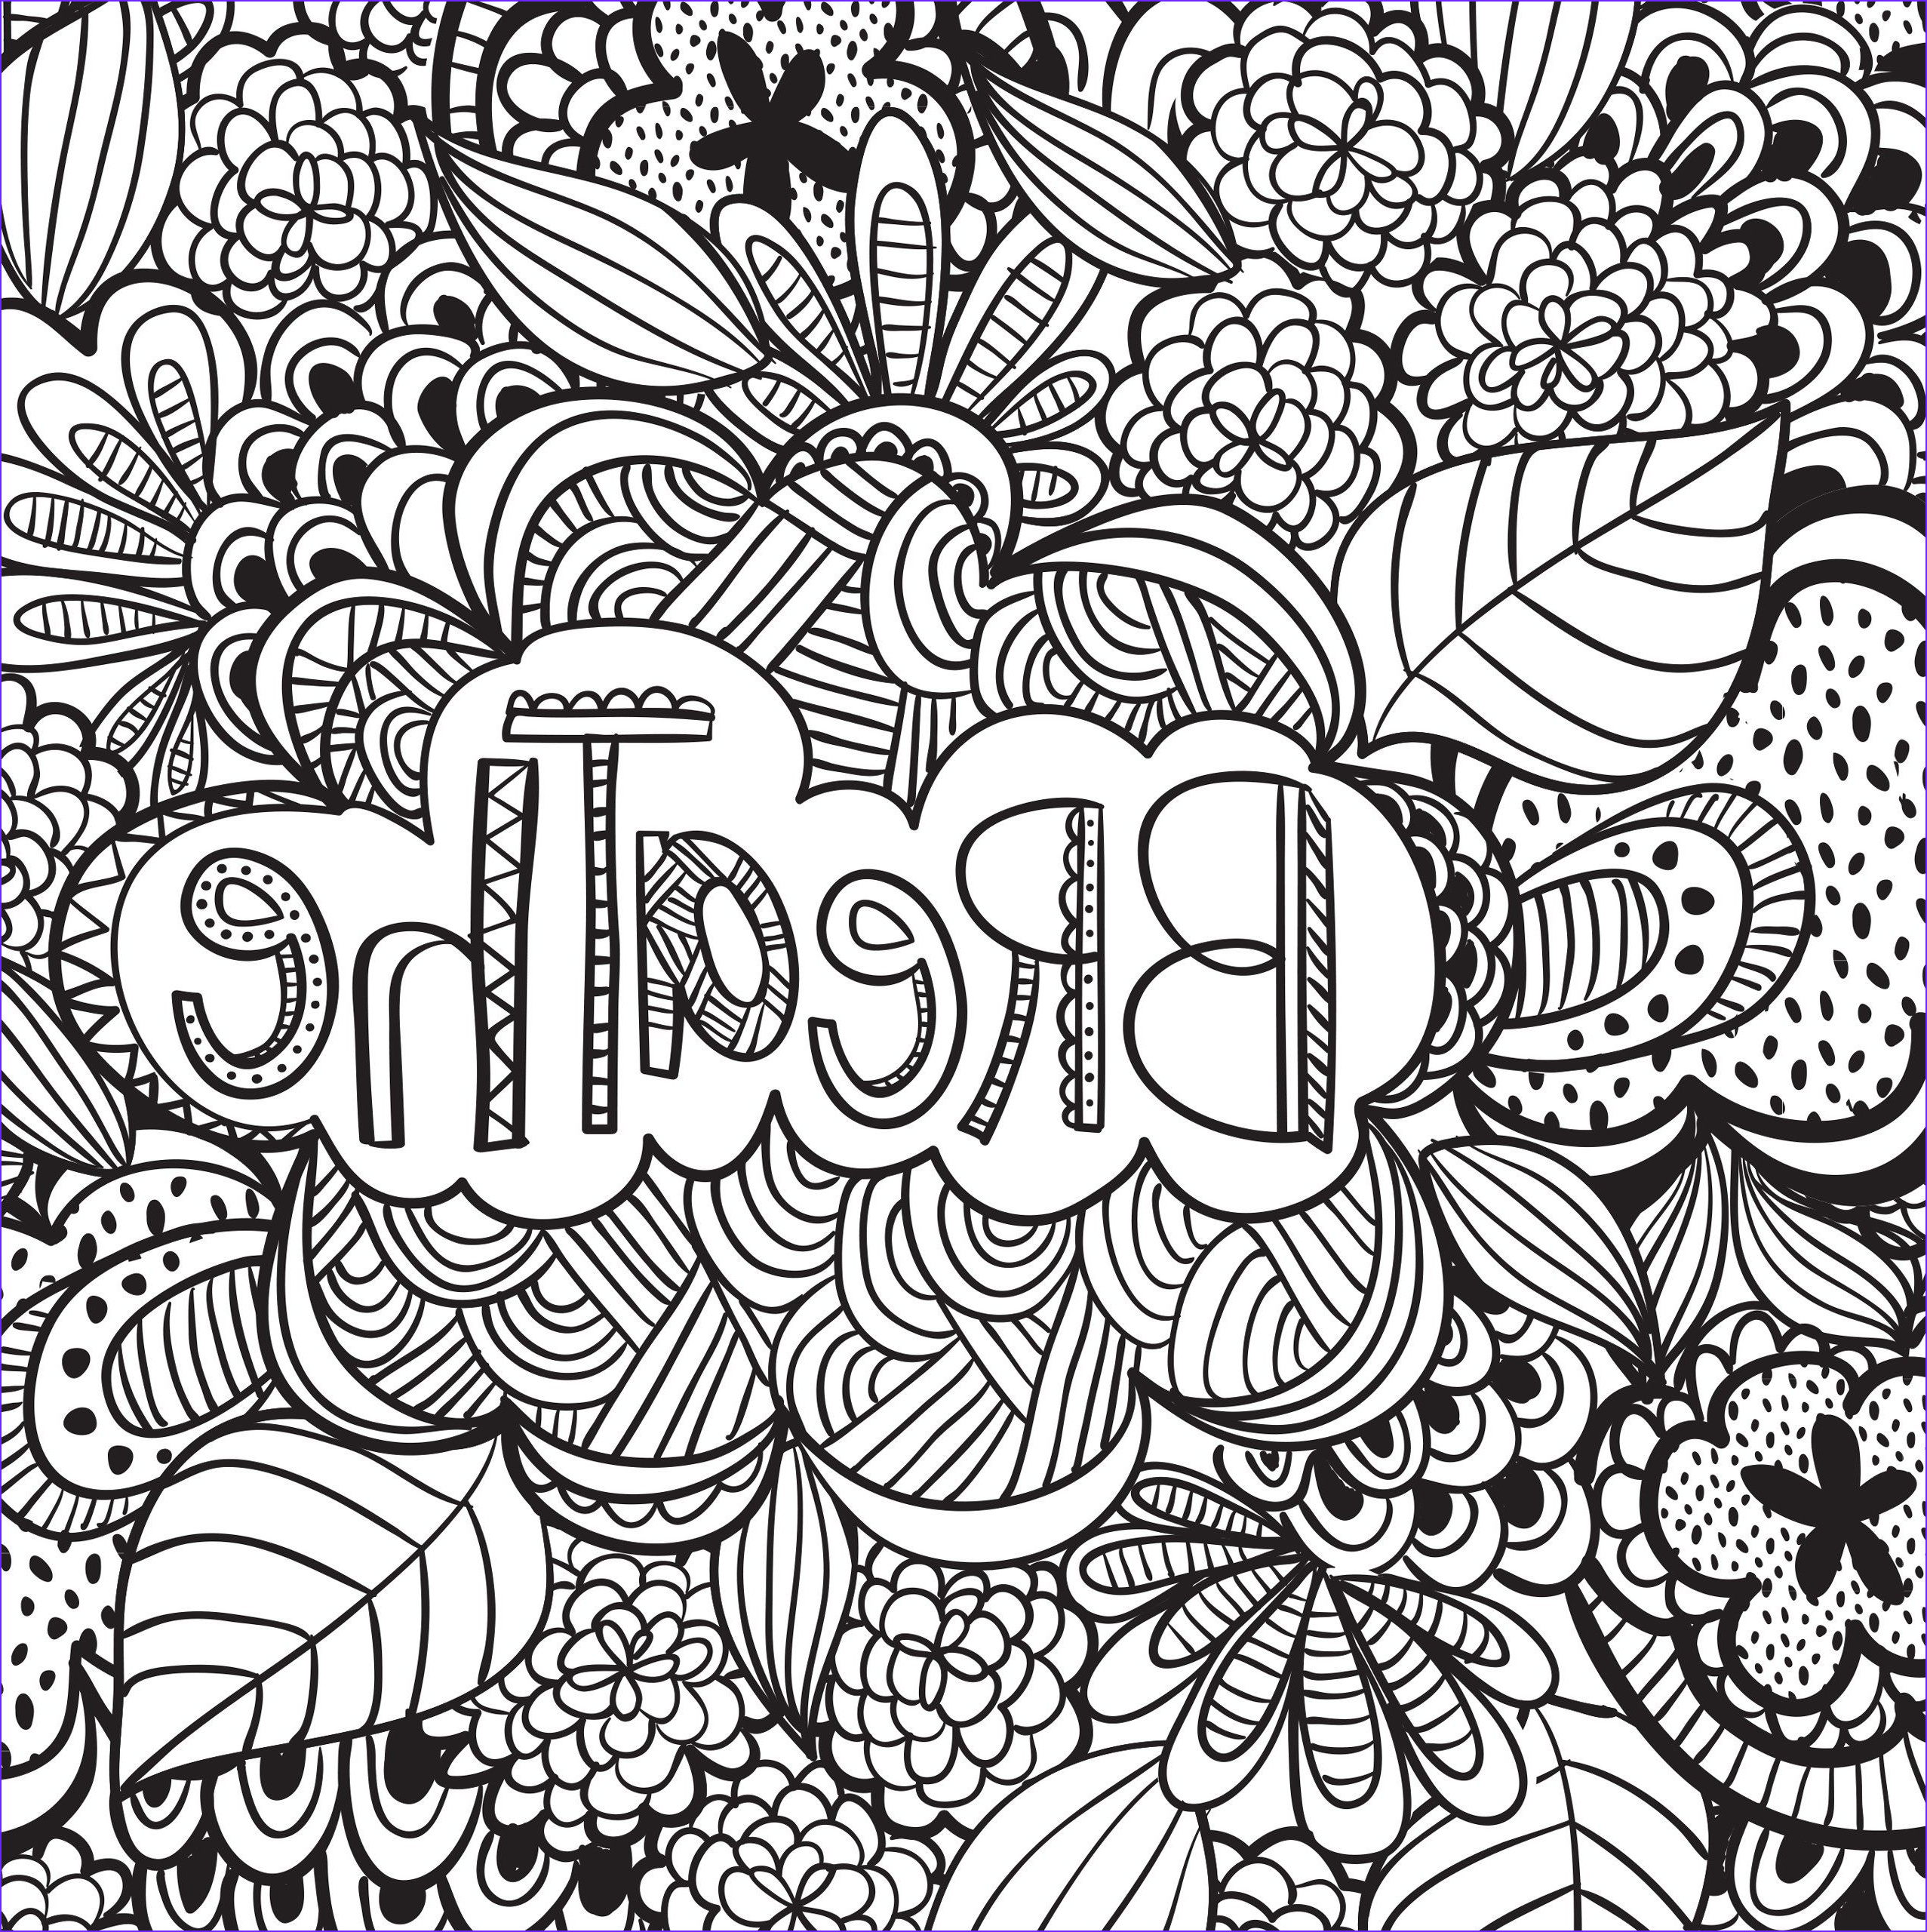 Coloring Page Designs Luxury Image Joyful Inspiration Adult Coloring Book 31 Stress